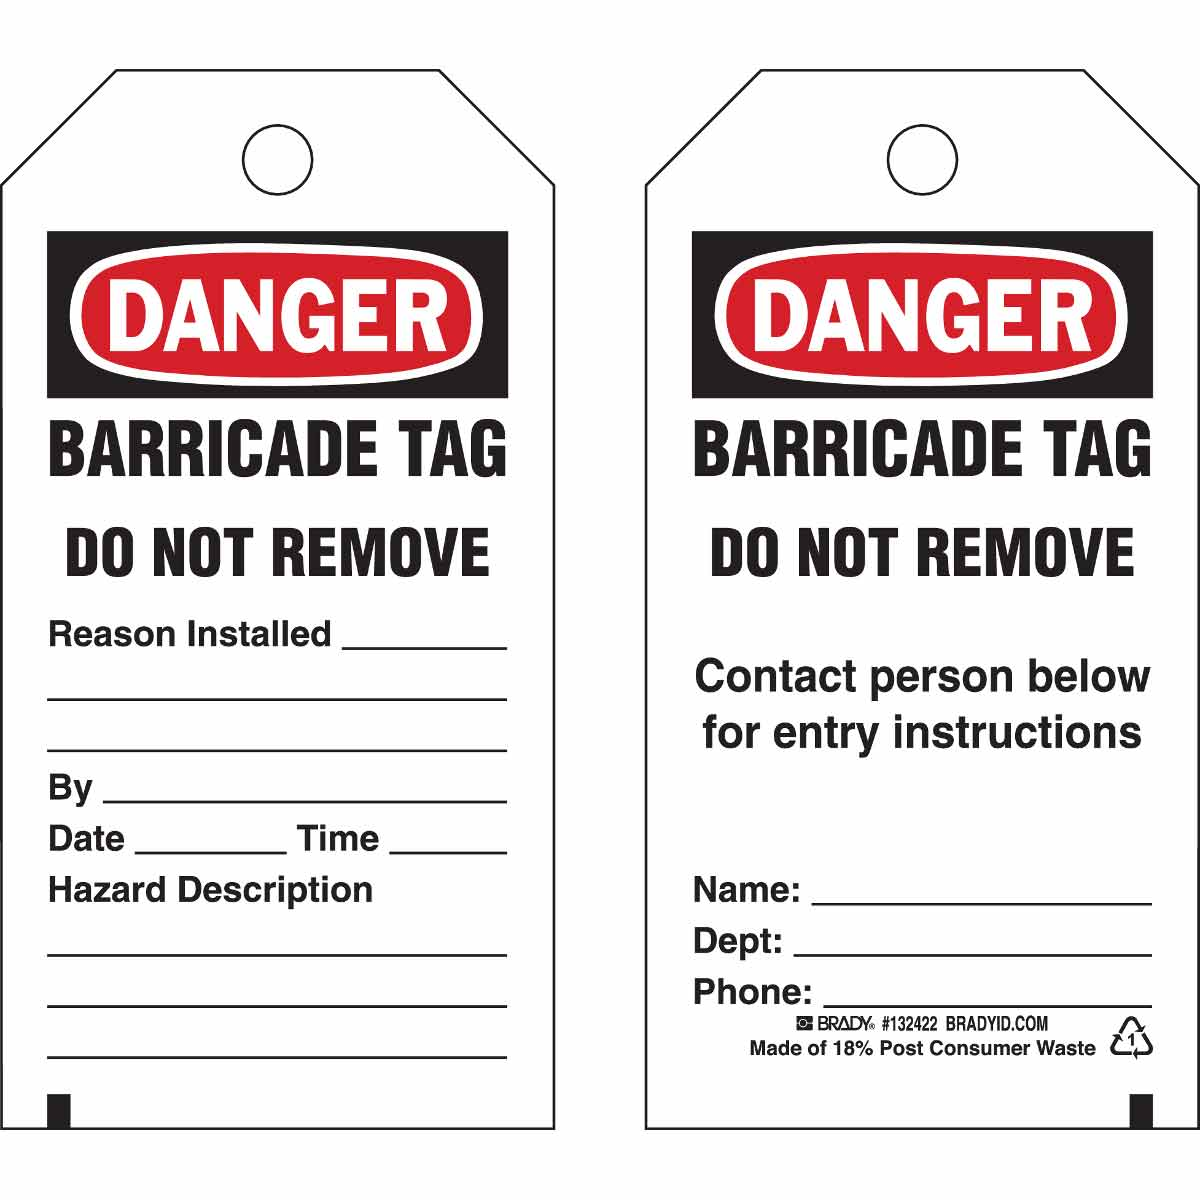 Brady Part 132422 Isolation Blind Tags Danger Barricade Tag Do Dangers Of Aluminum Wiring Not Remove Contact Person Below For Entry Instructi